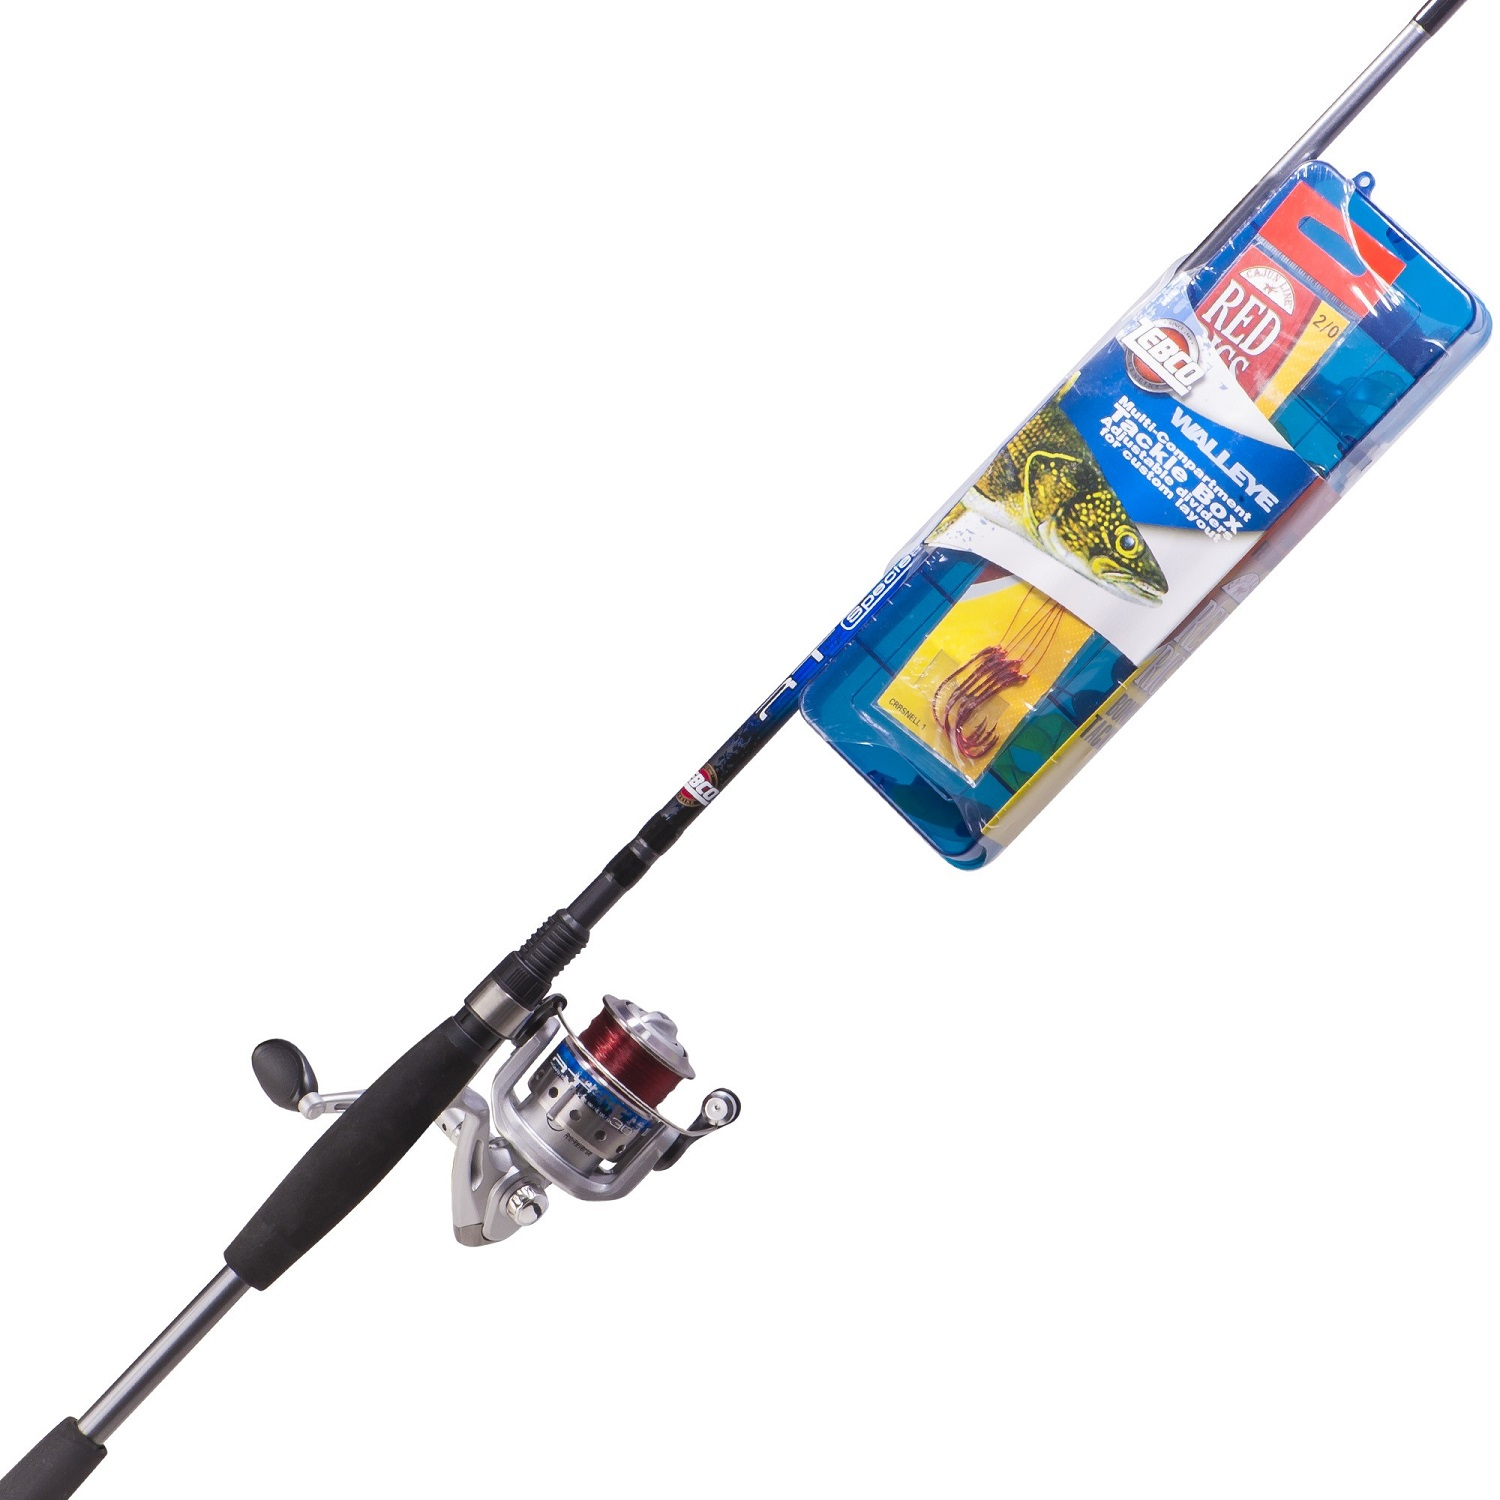 Zebco ready tackle walleye ml spin combo for Kmart fishing pole